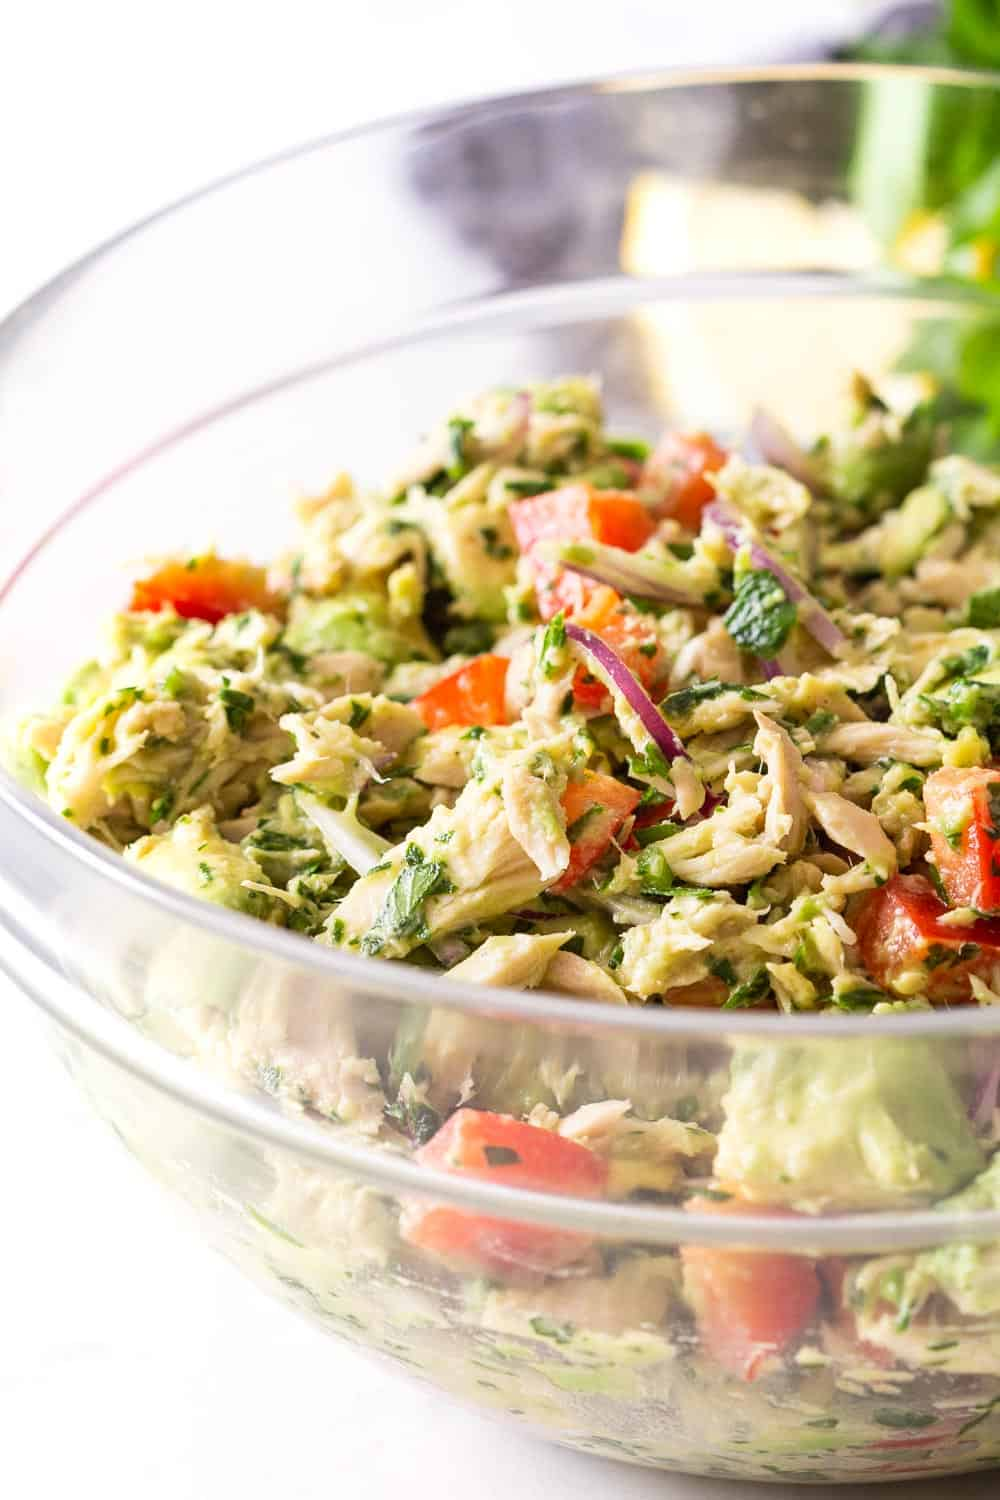 Tuna Avocado Salad all ingredients mixed up in a glass bowl.